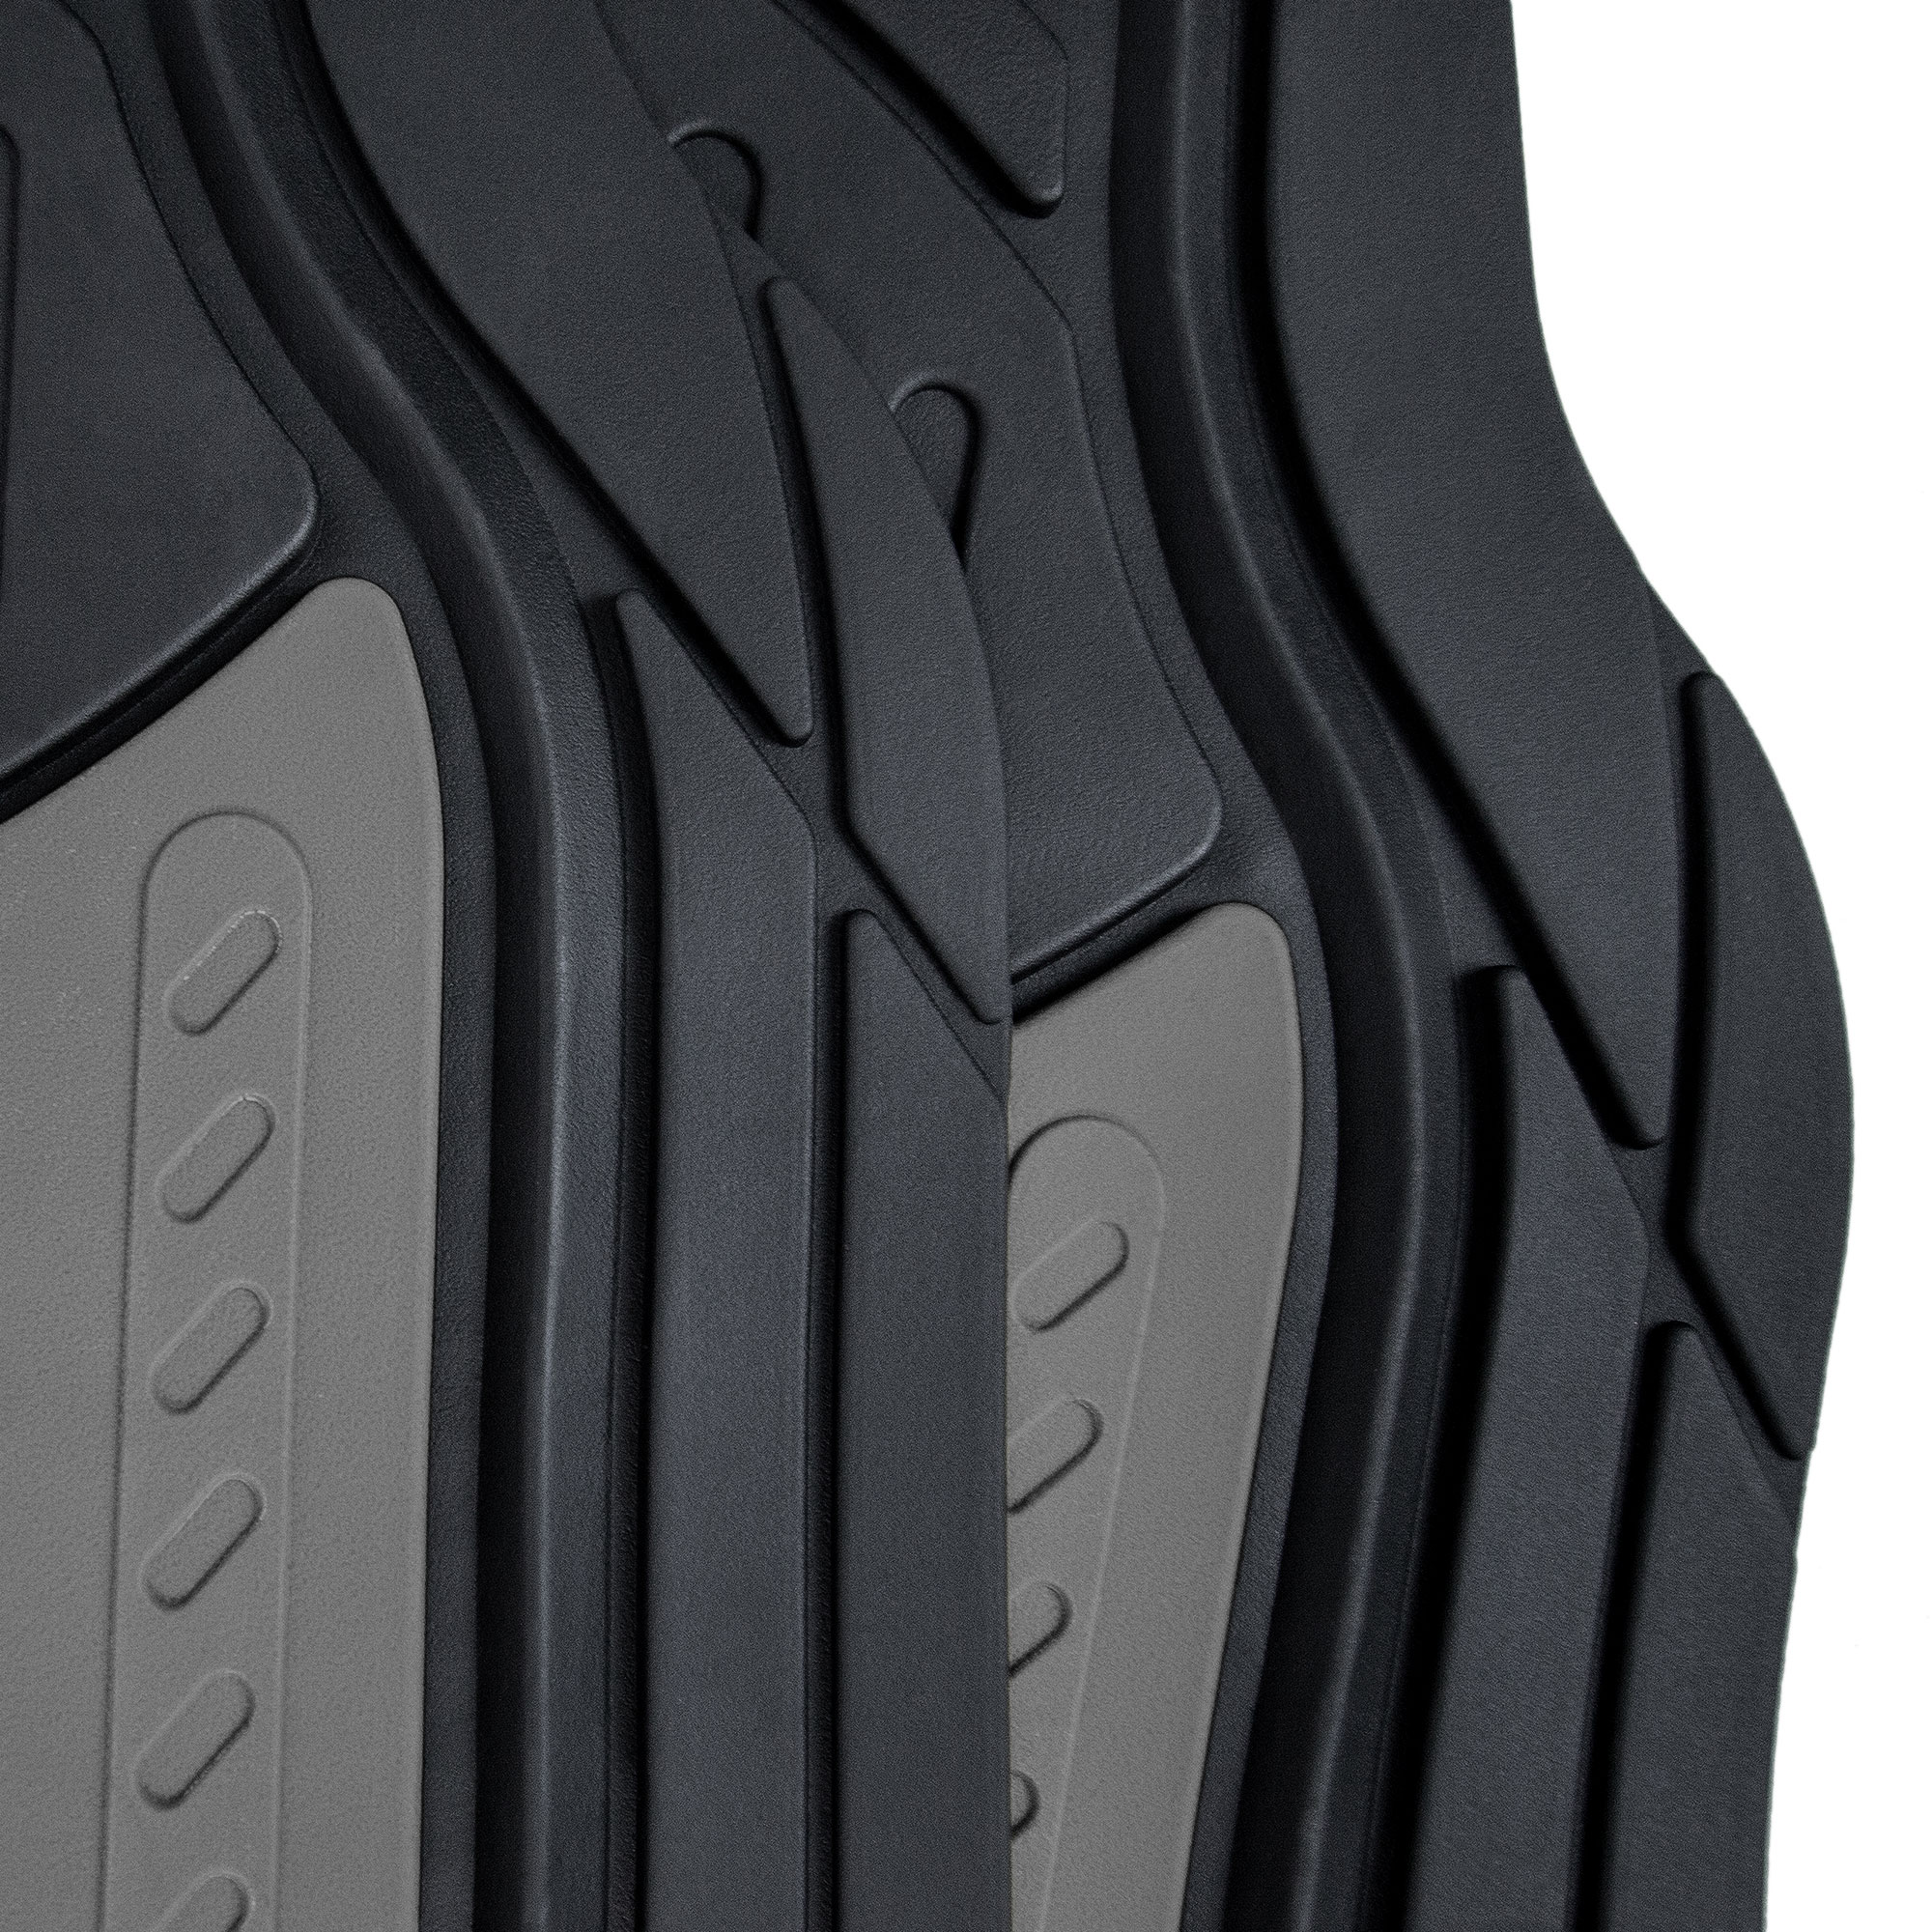 thumbnail 16 - Car Floor Mats for All Weather Rubber 2-Tone Design Heavy Duty - 4 Pc Set